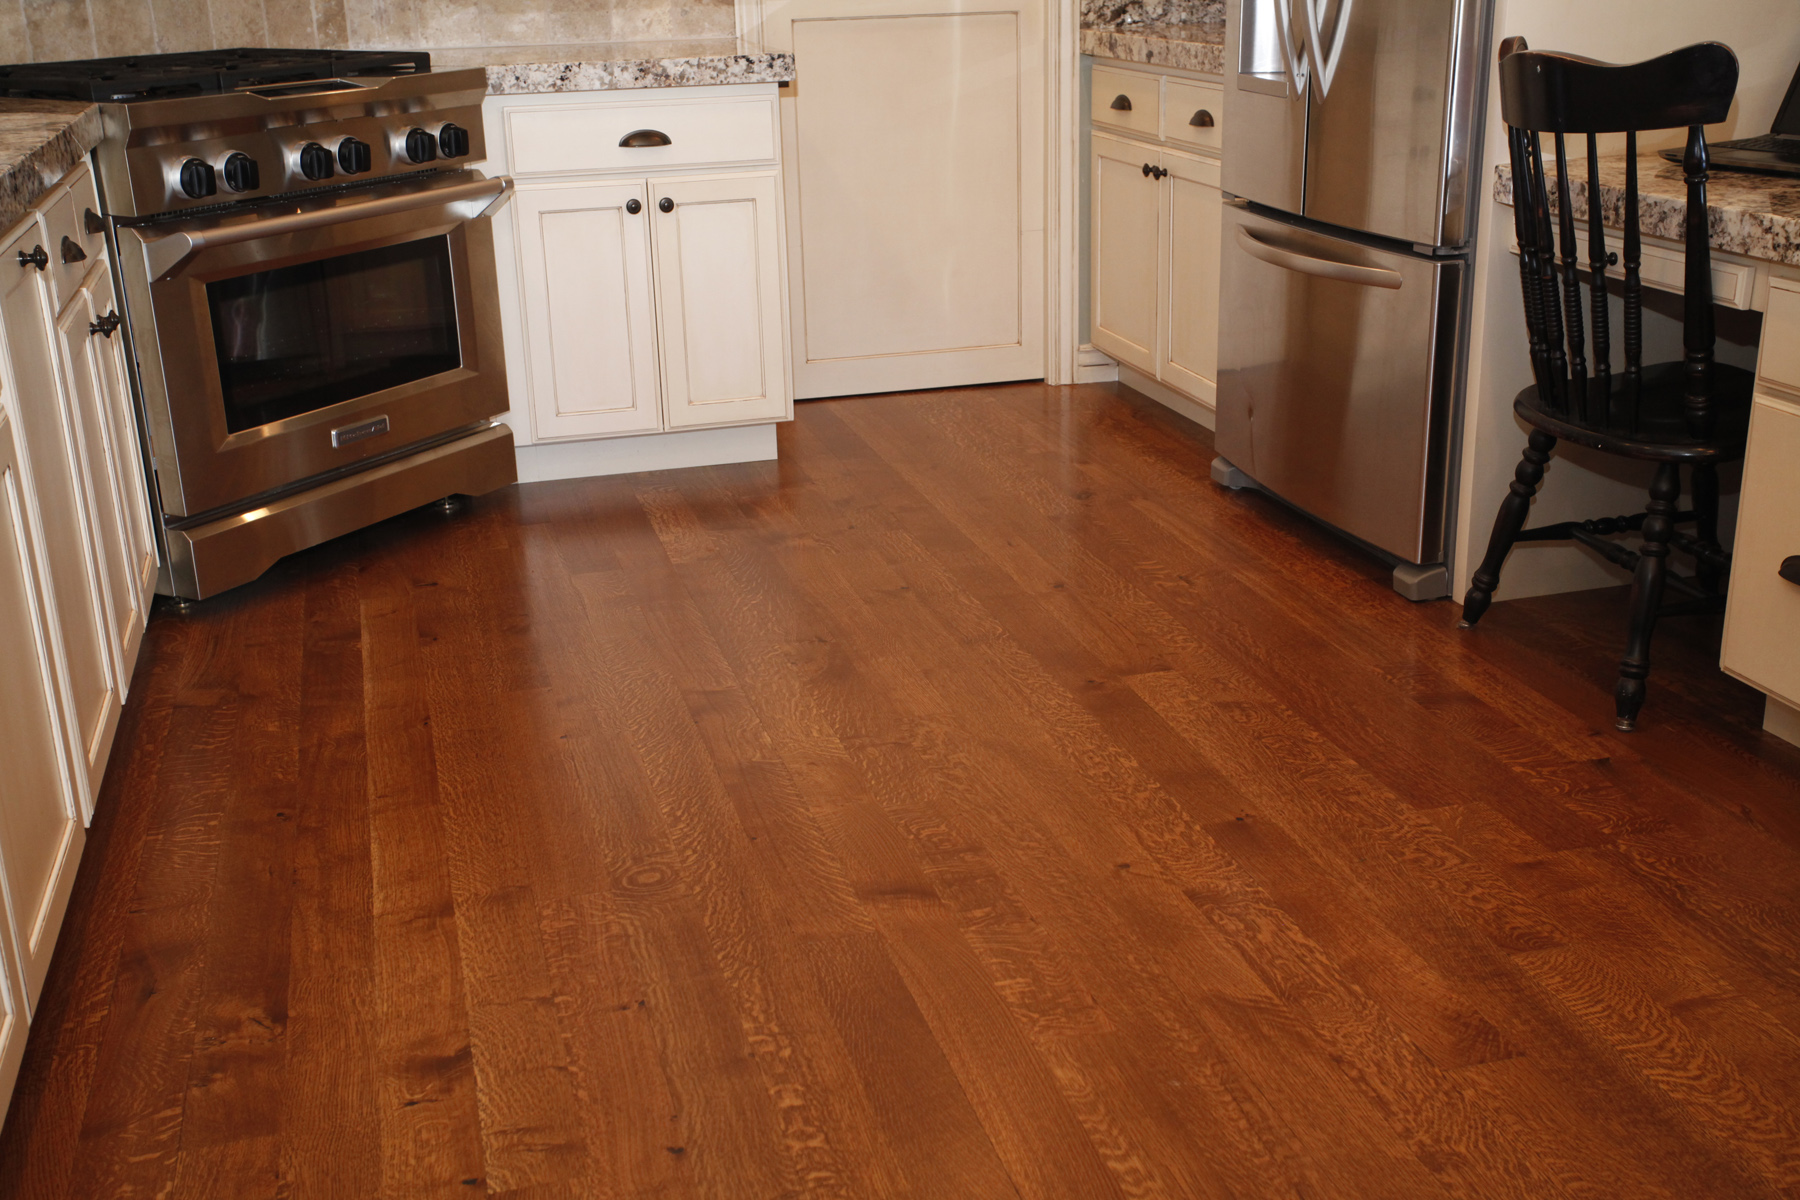 Carson s custom hardwood floors utah hardwood flooring for Flooring for kitchen floors